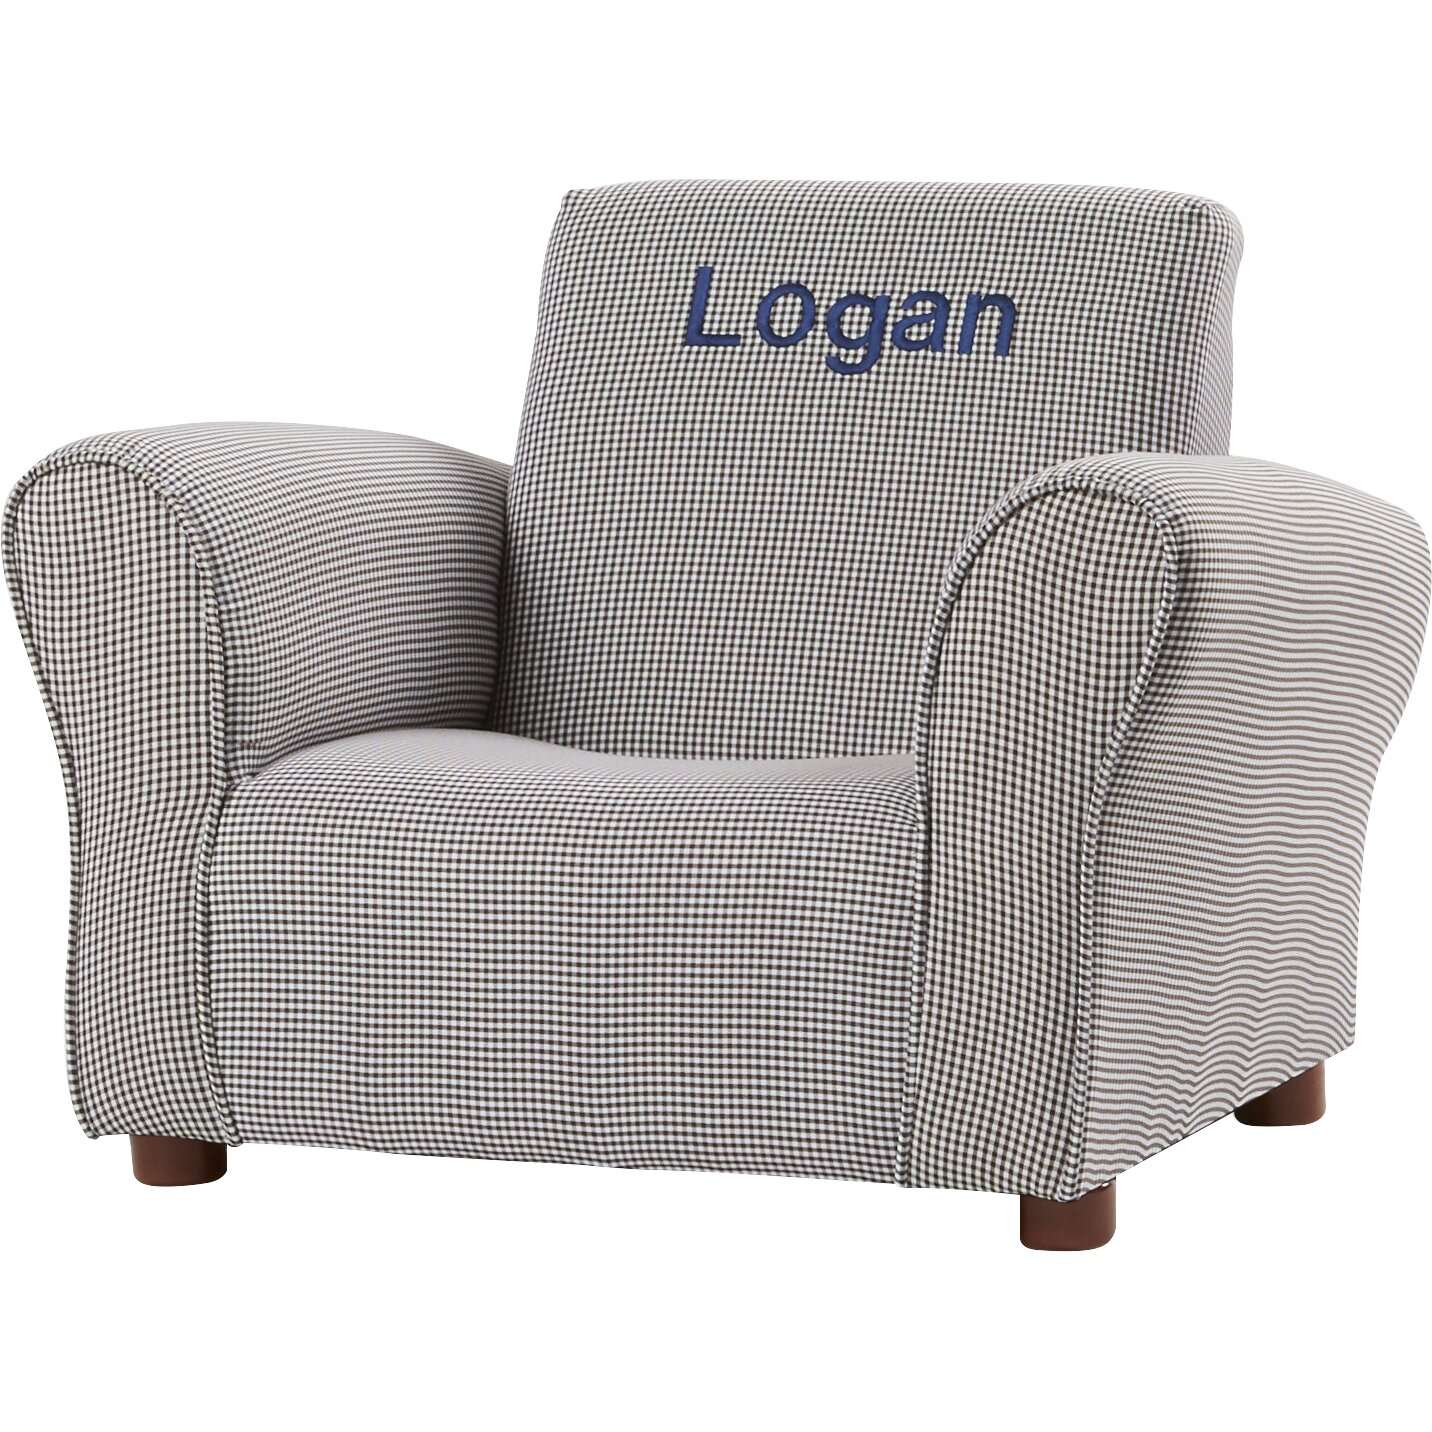 Personalized upholstered toddler chair personalized for Personalized kids soft chairs